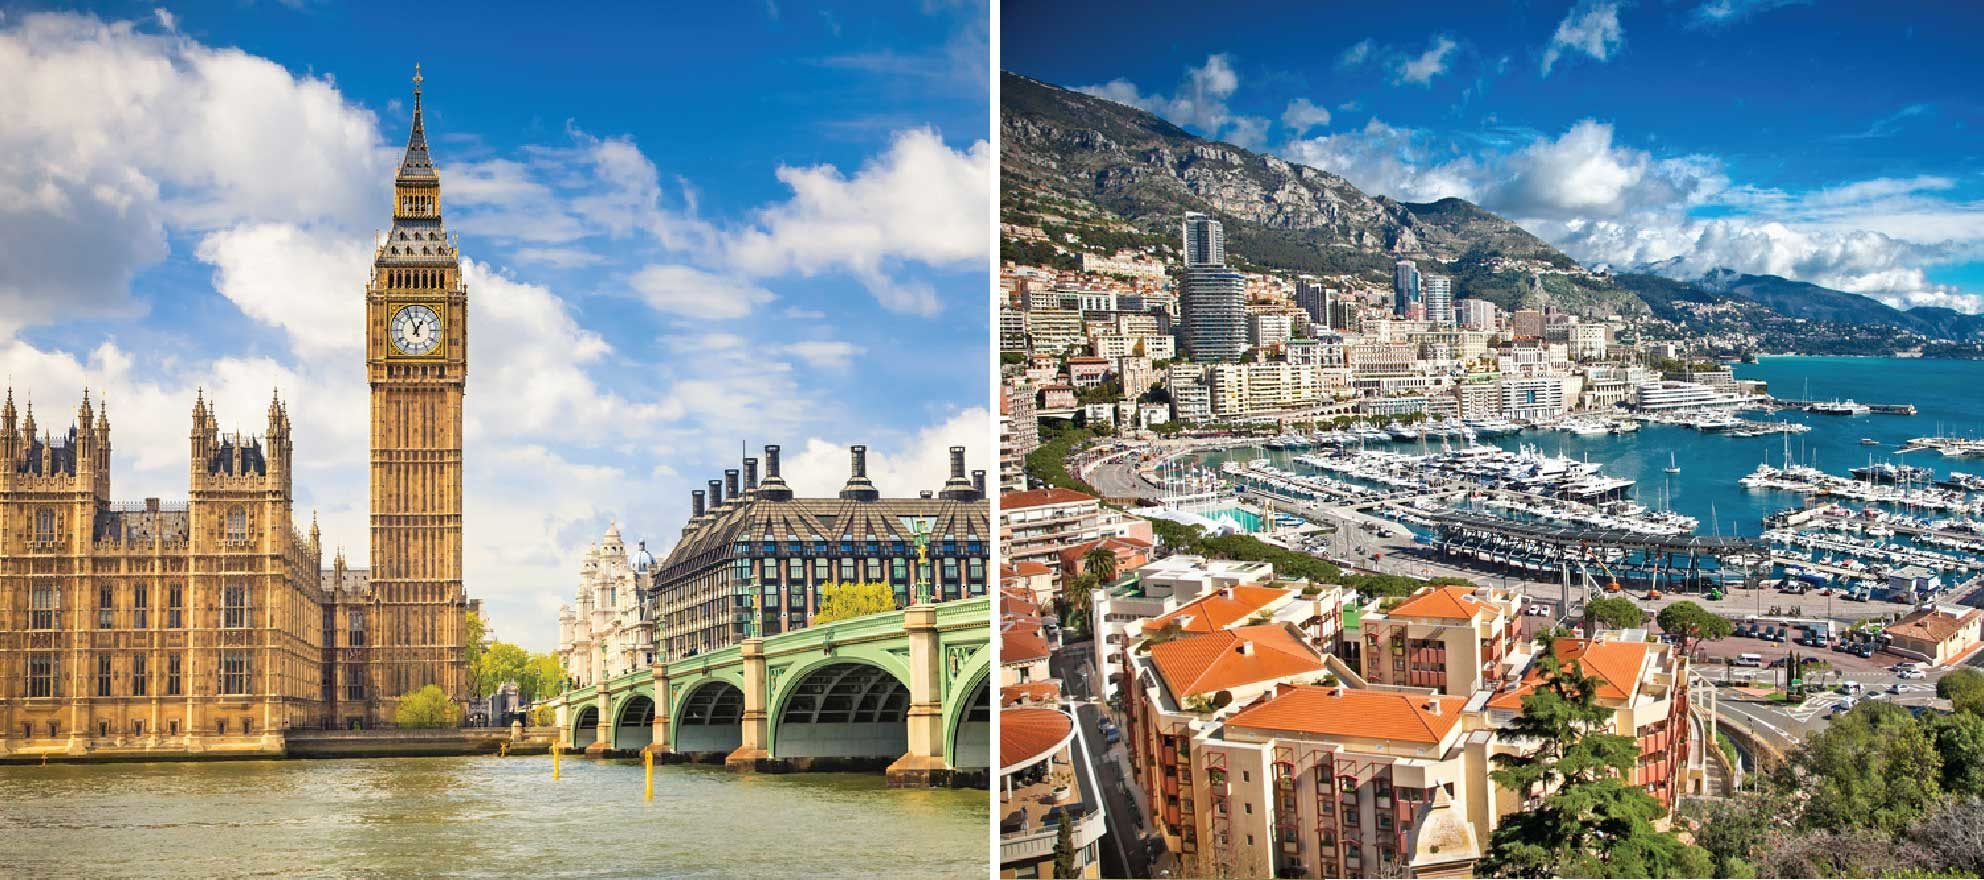 Real estate in London and Monaco is affecting Britain's market